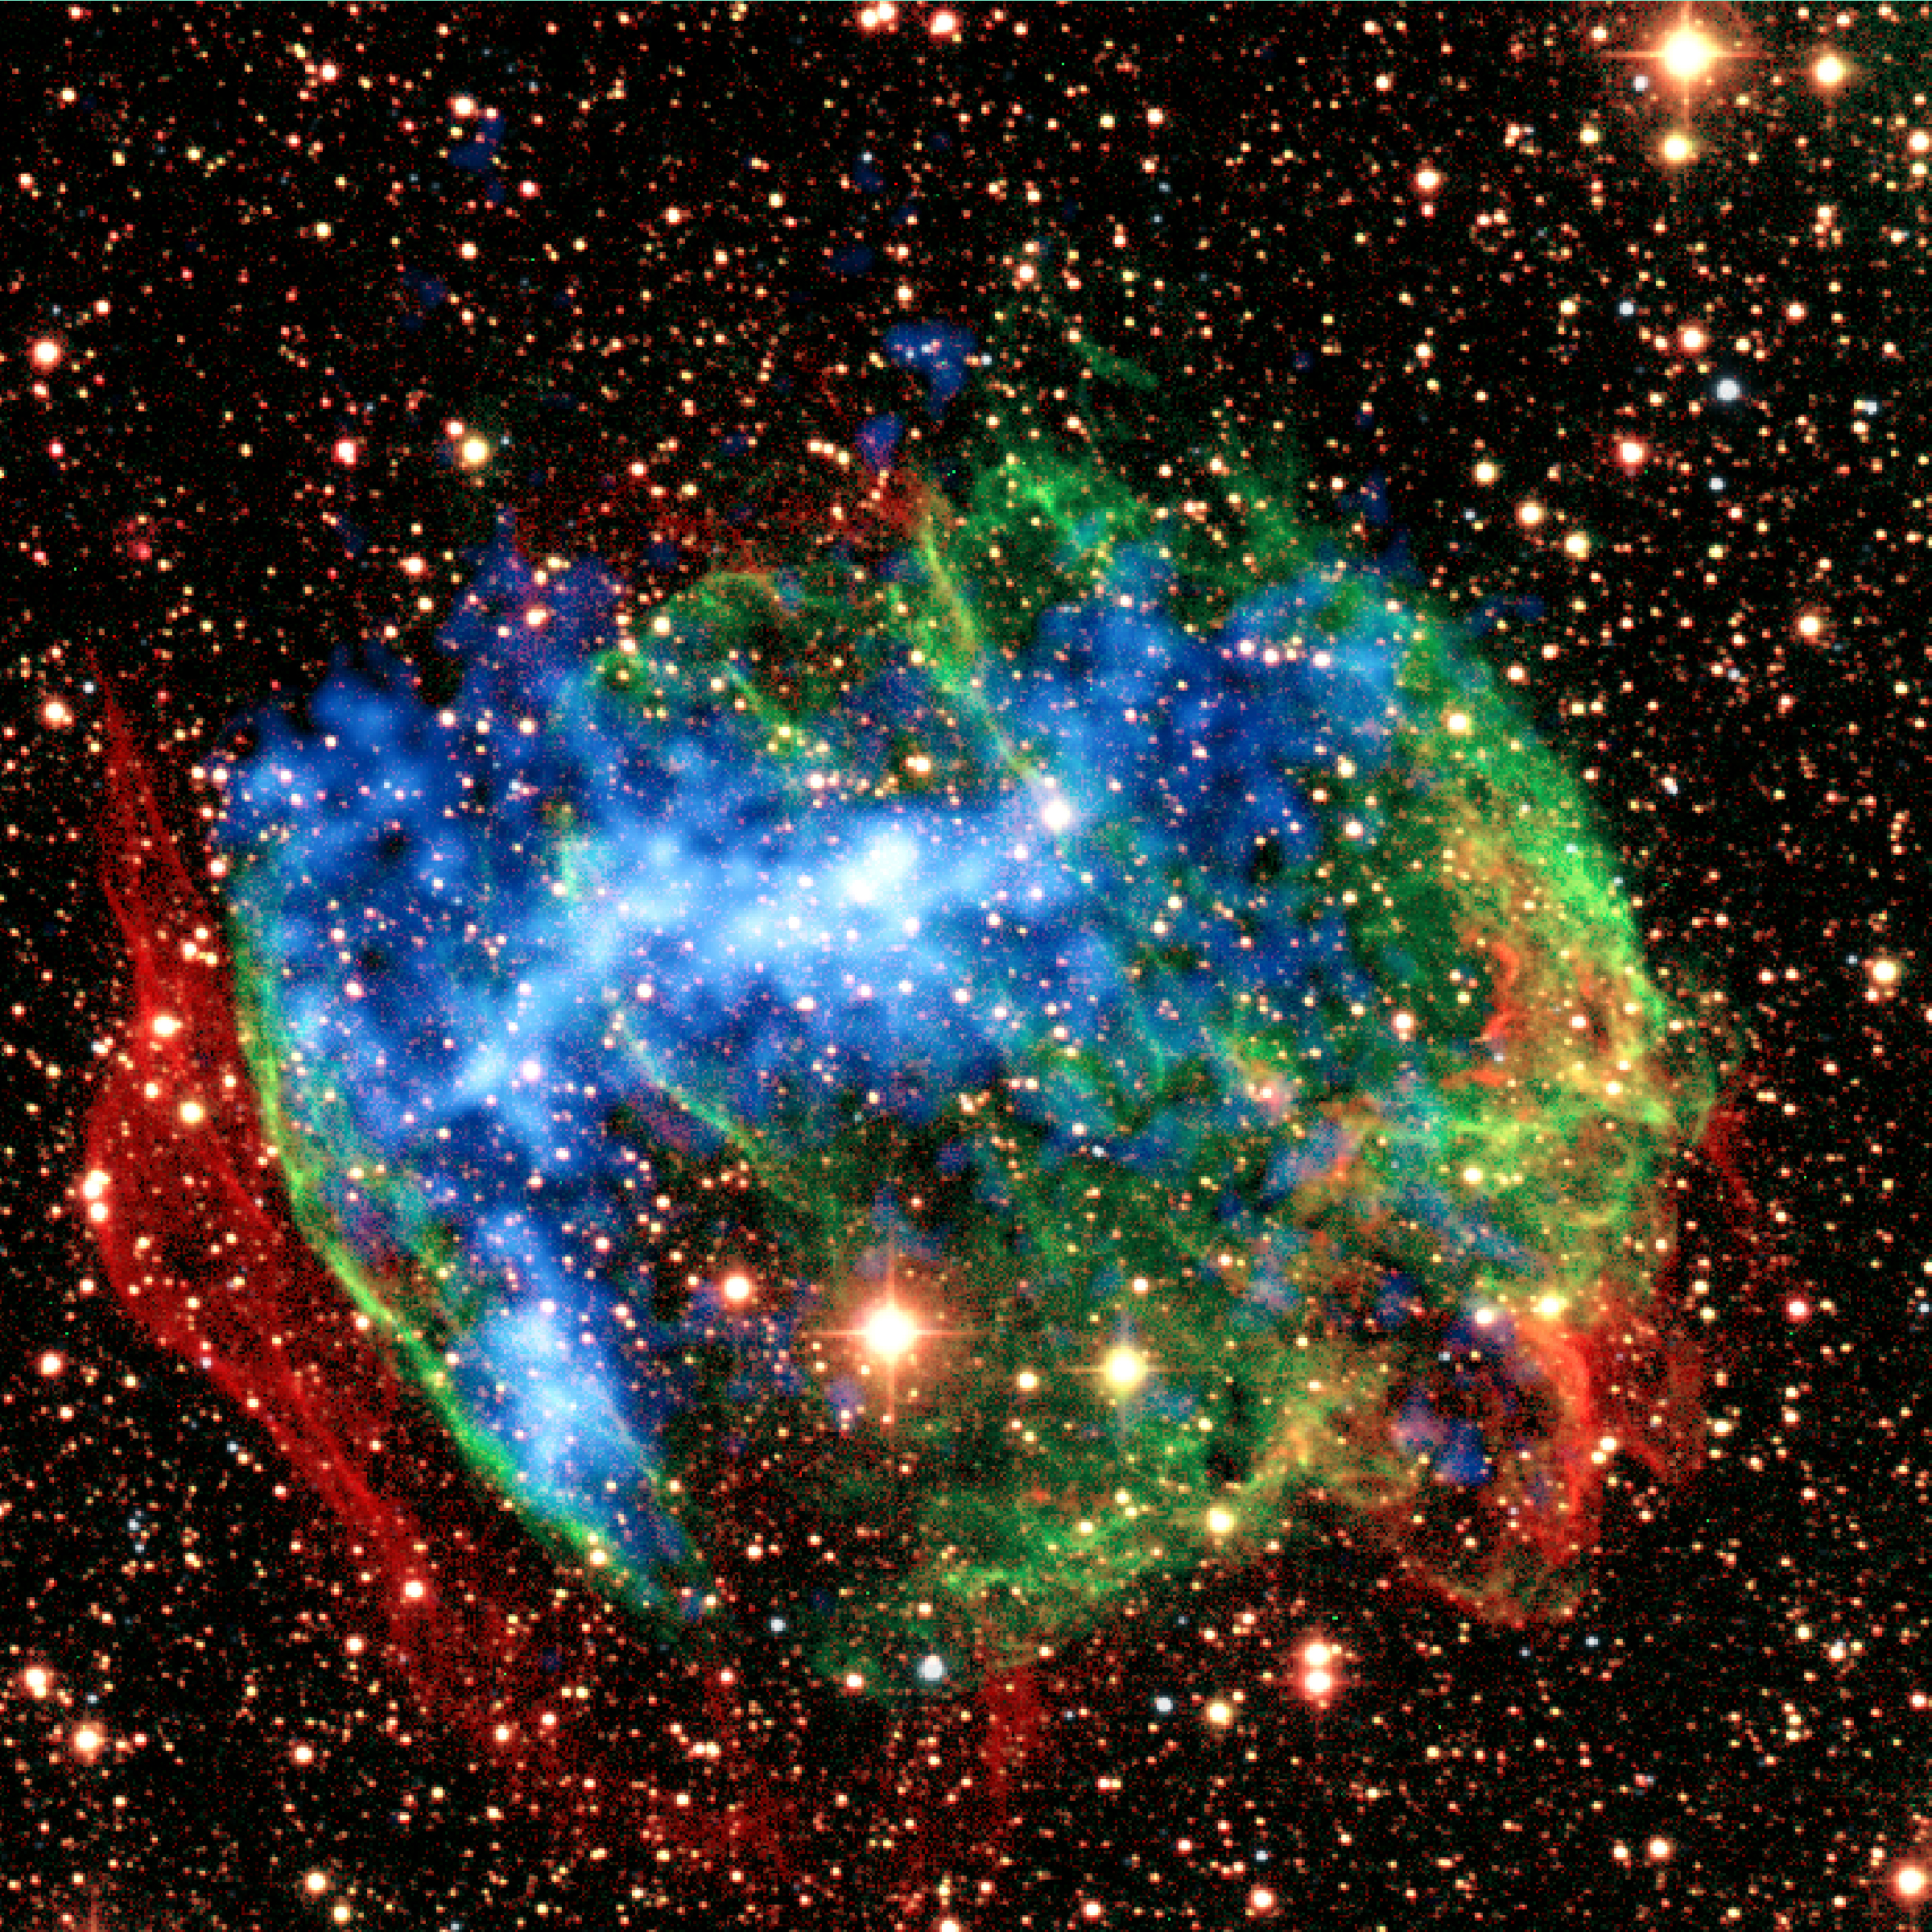 Astronomers first determined the chemical composition of supernova remnants